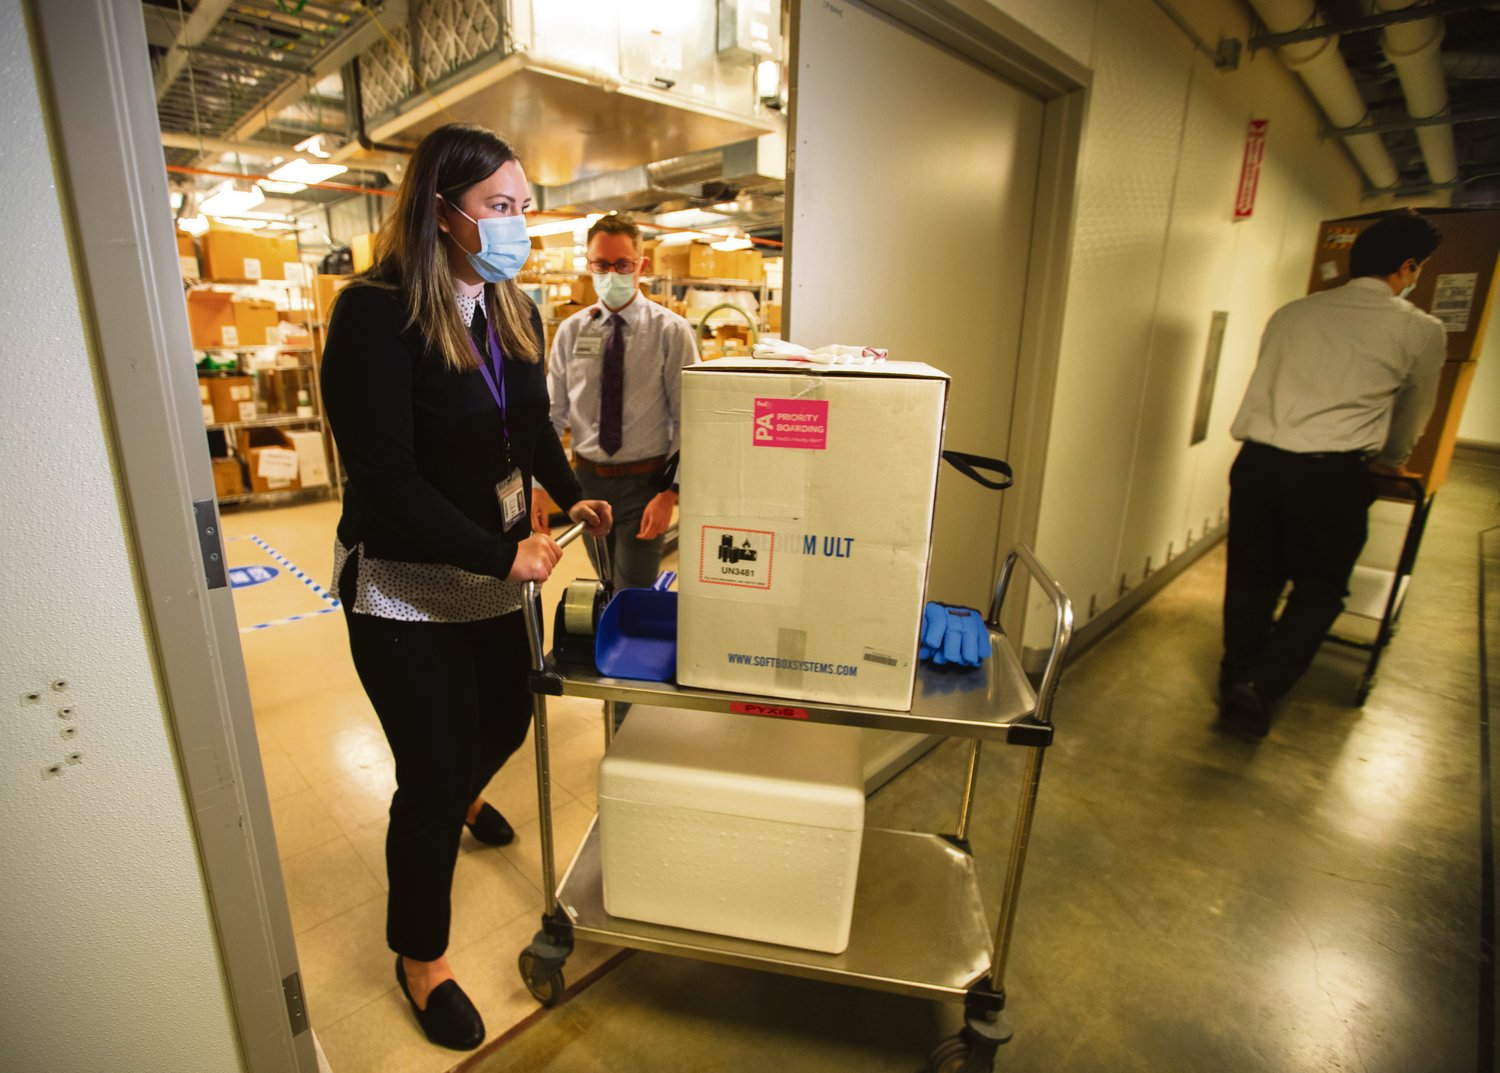 WA DOH POOL PHOTO - UWMC Pharmacy Manager Christine Meyer puts a tray of 975 doses of Pfizer's coronavirus vaccine into the deep freeze after the vaccine arrived at UW Medicine's Montlake campus Monday morning, December 14, 2020. These are among the first to be distributed in Washington state...A total of 3,900 doses arrived at the UW on Monday that will be distributed among UW Medicine's four hospital campuses...Photographed on December 14, 2020.